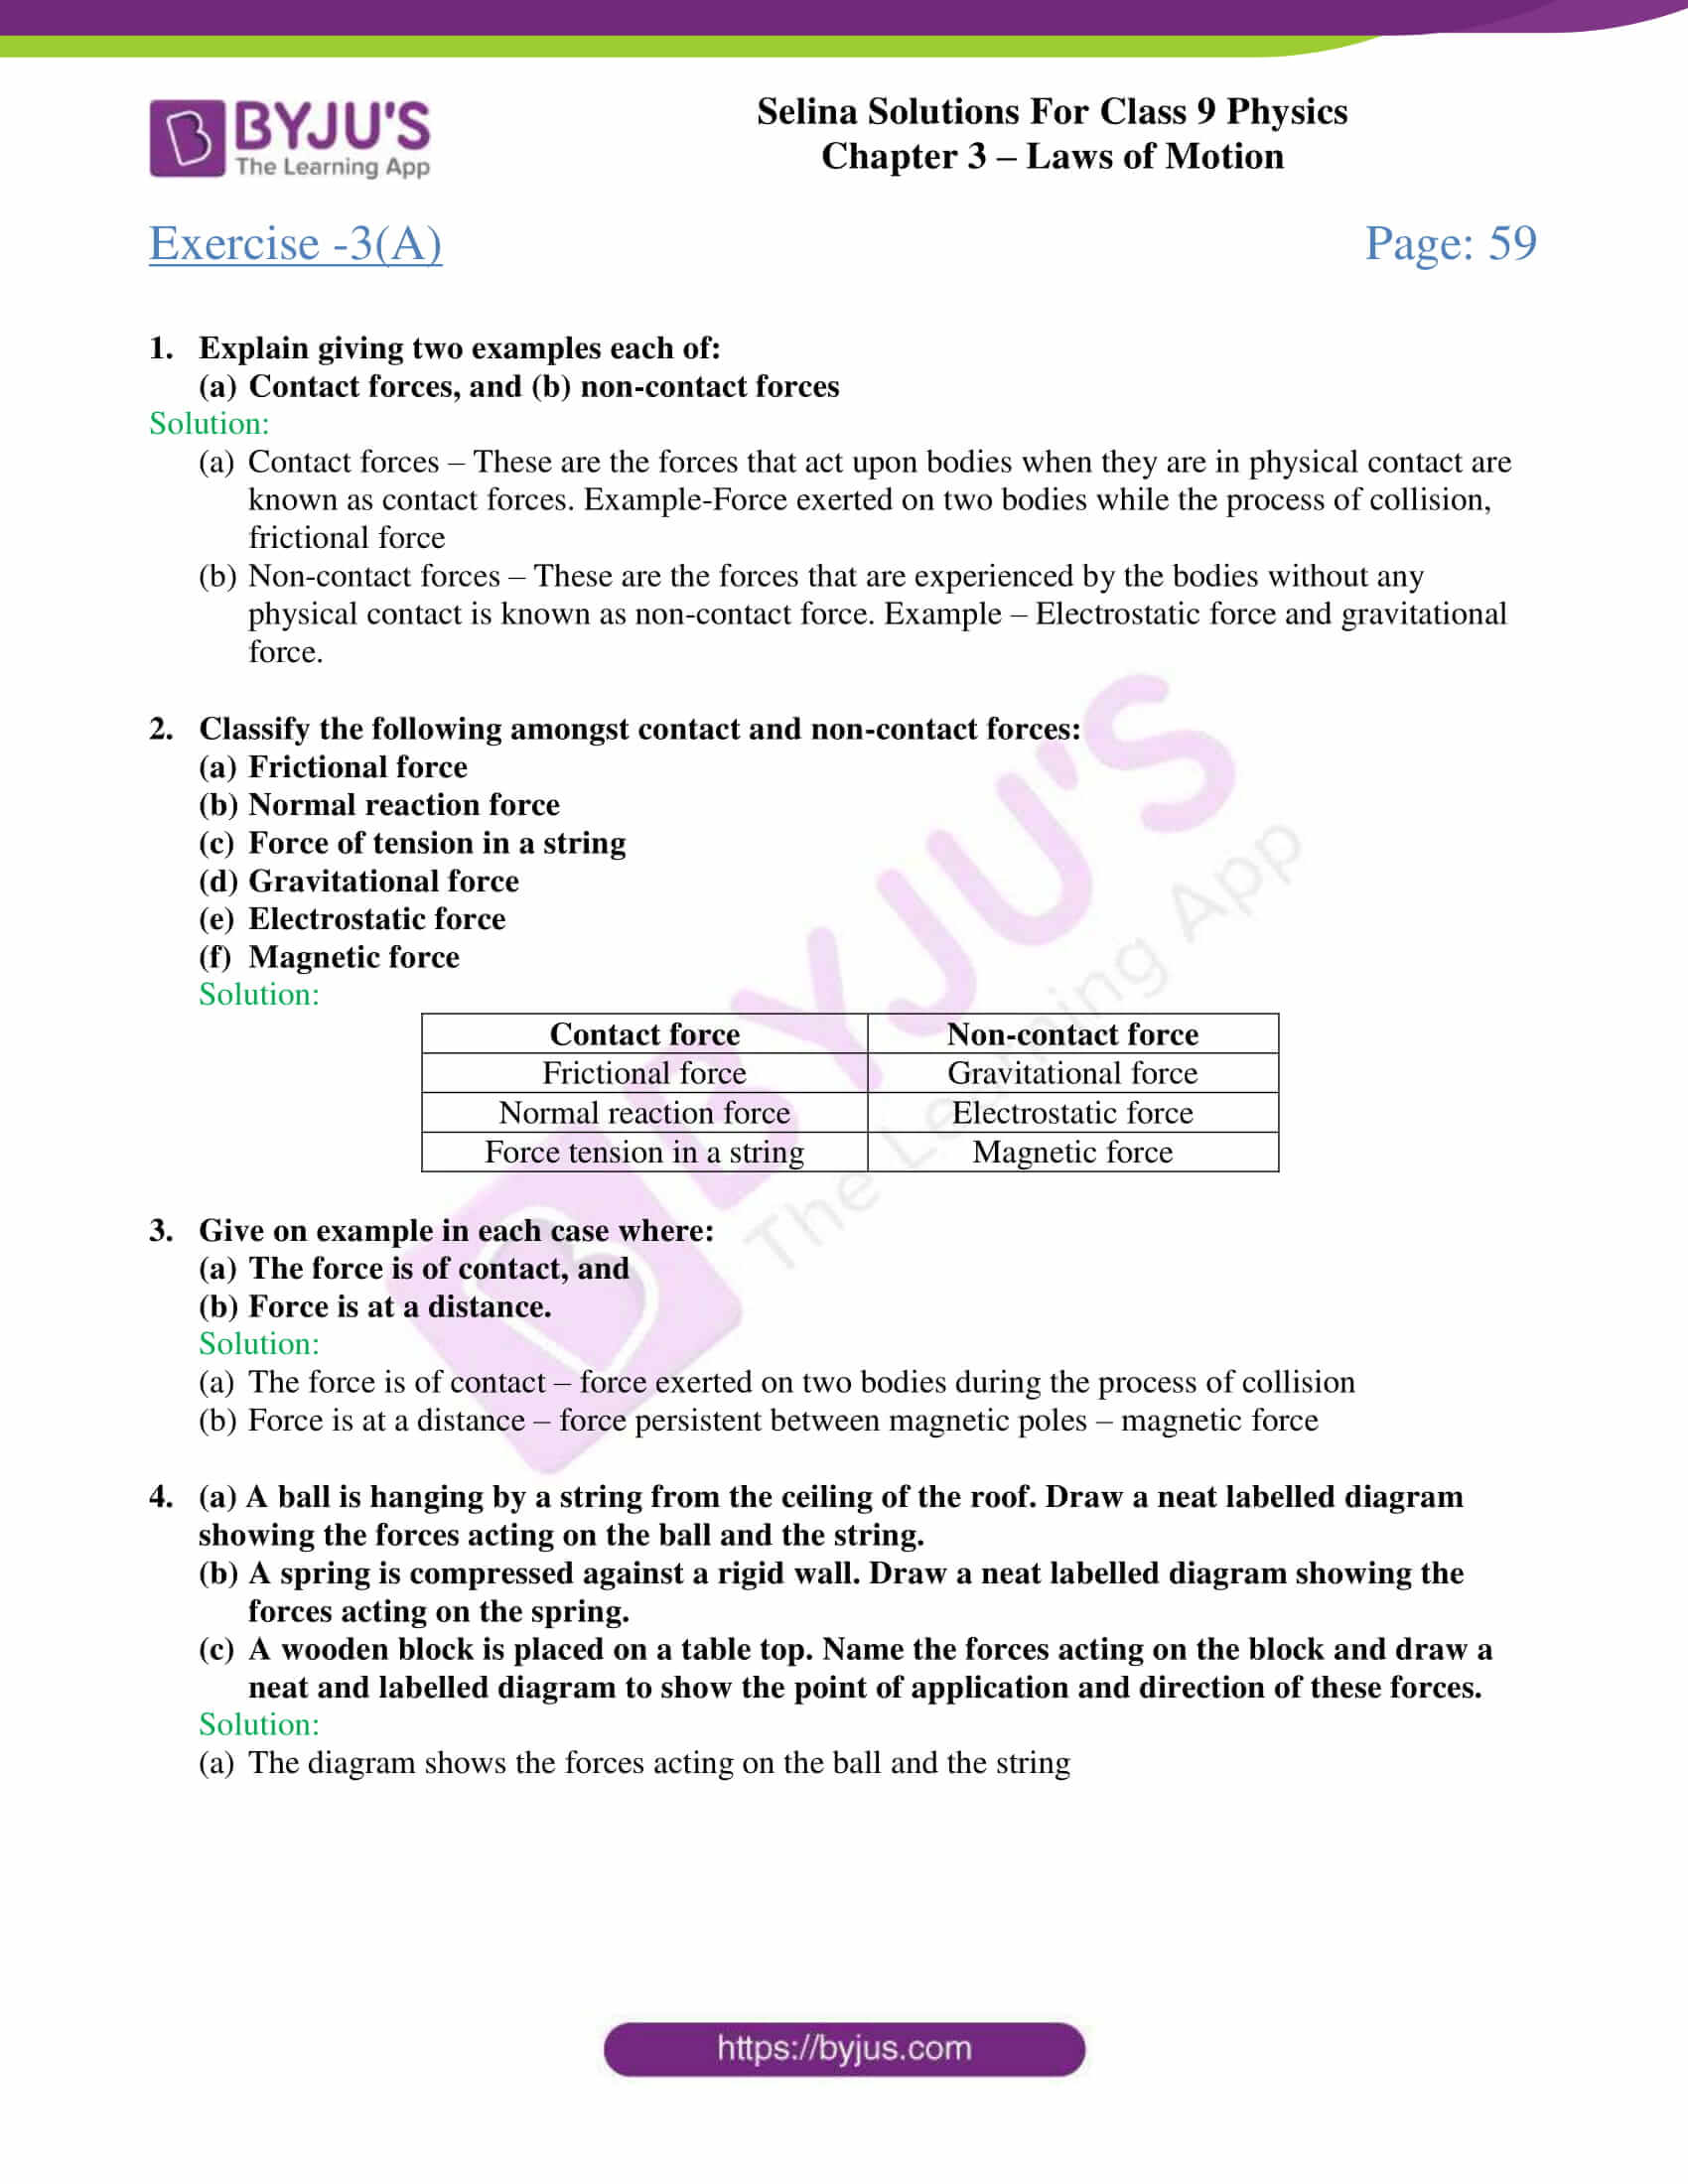 selina solutions class 9 physics chapter 3 Laws of Motion part 01